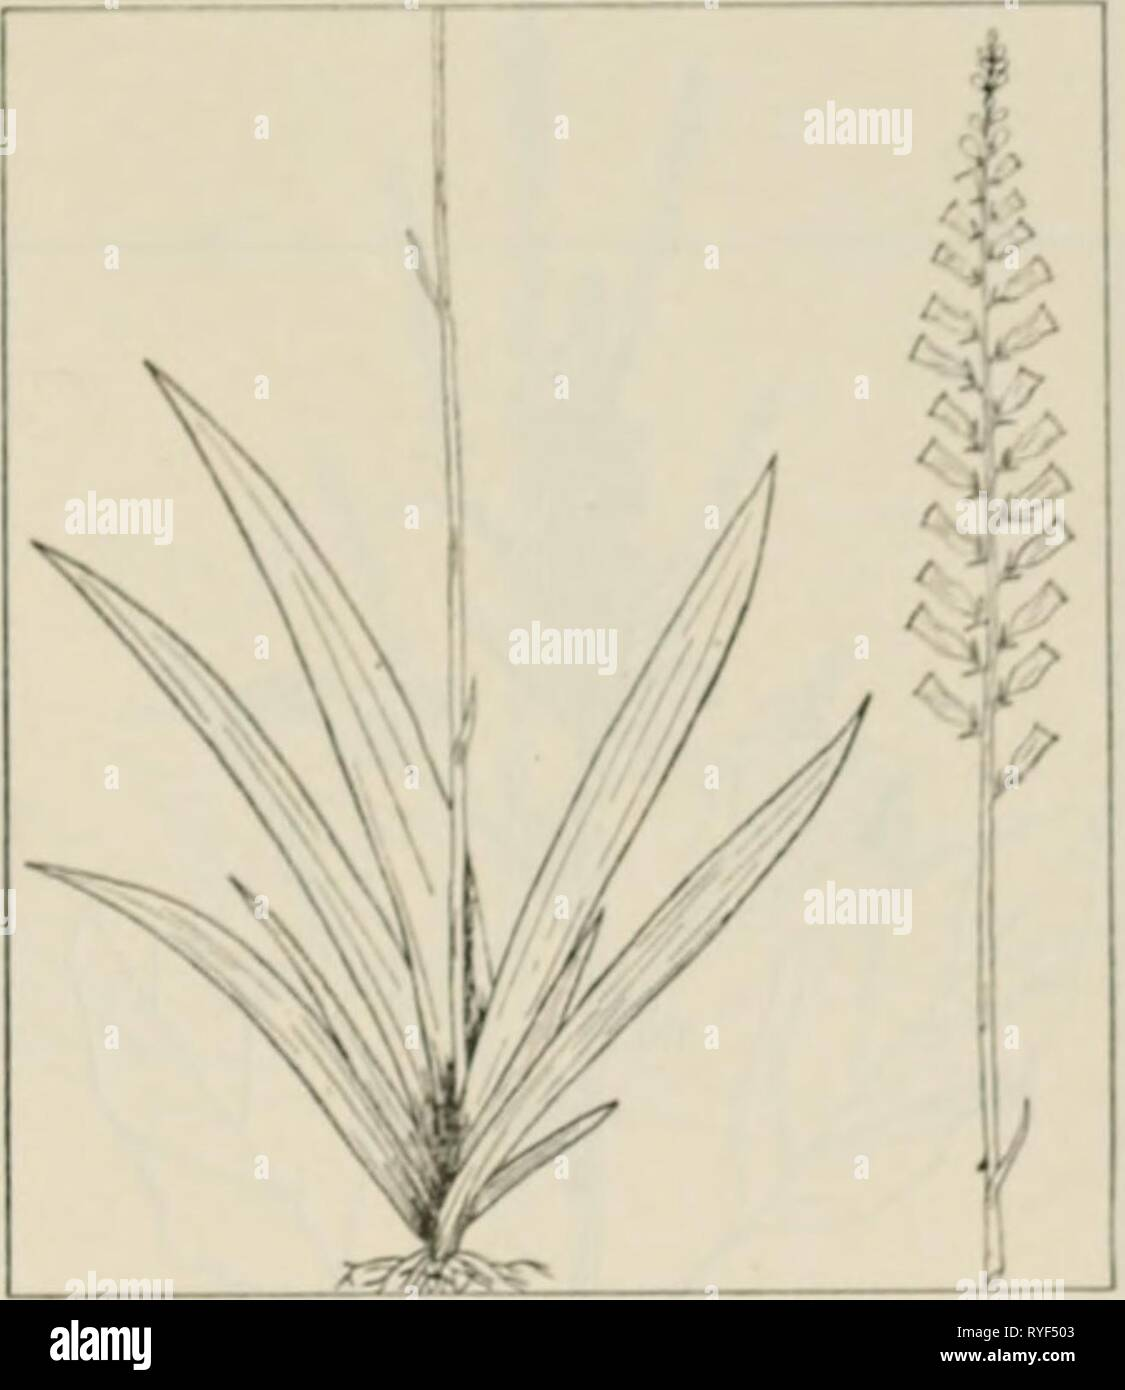 The drug plants of Illinois  drugplantsofilli44teho Year: 1951  Tehon THE DRUG PLANTS OF ILLINOIS 17 ALETRIS FARINOSA L. Star ^rass, colic-root, ague grass, true unicorn root. Liliaceae.—A stcmlcss, glabrous herb, perennial; roots fibrous, numerous, tough; leaves directly from the crown, lanci-oiatc, acuminate at the tip, narrowed to the base, pale yellow-green, 2 to 6 inches long, up to ^ inch wide; flowers white or yellow tipped, about I/4 inch long, closely set in a spike 4 to 12 inches long at the top of a slender, striate flower stalk li/^ to 3 feet tall. Rootstock and roots collected in  Stock Photo